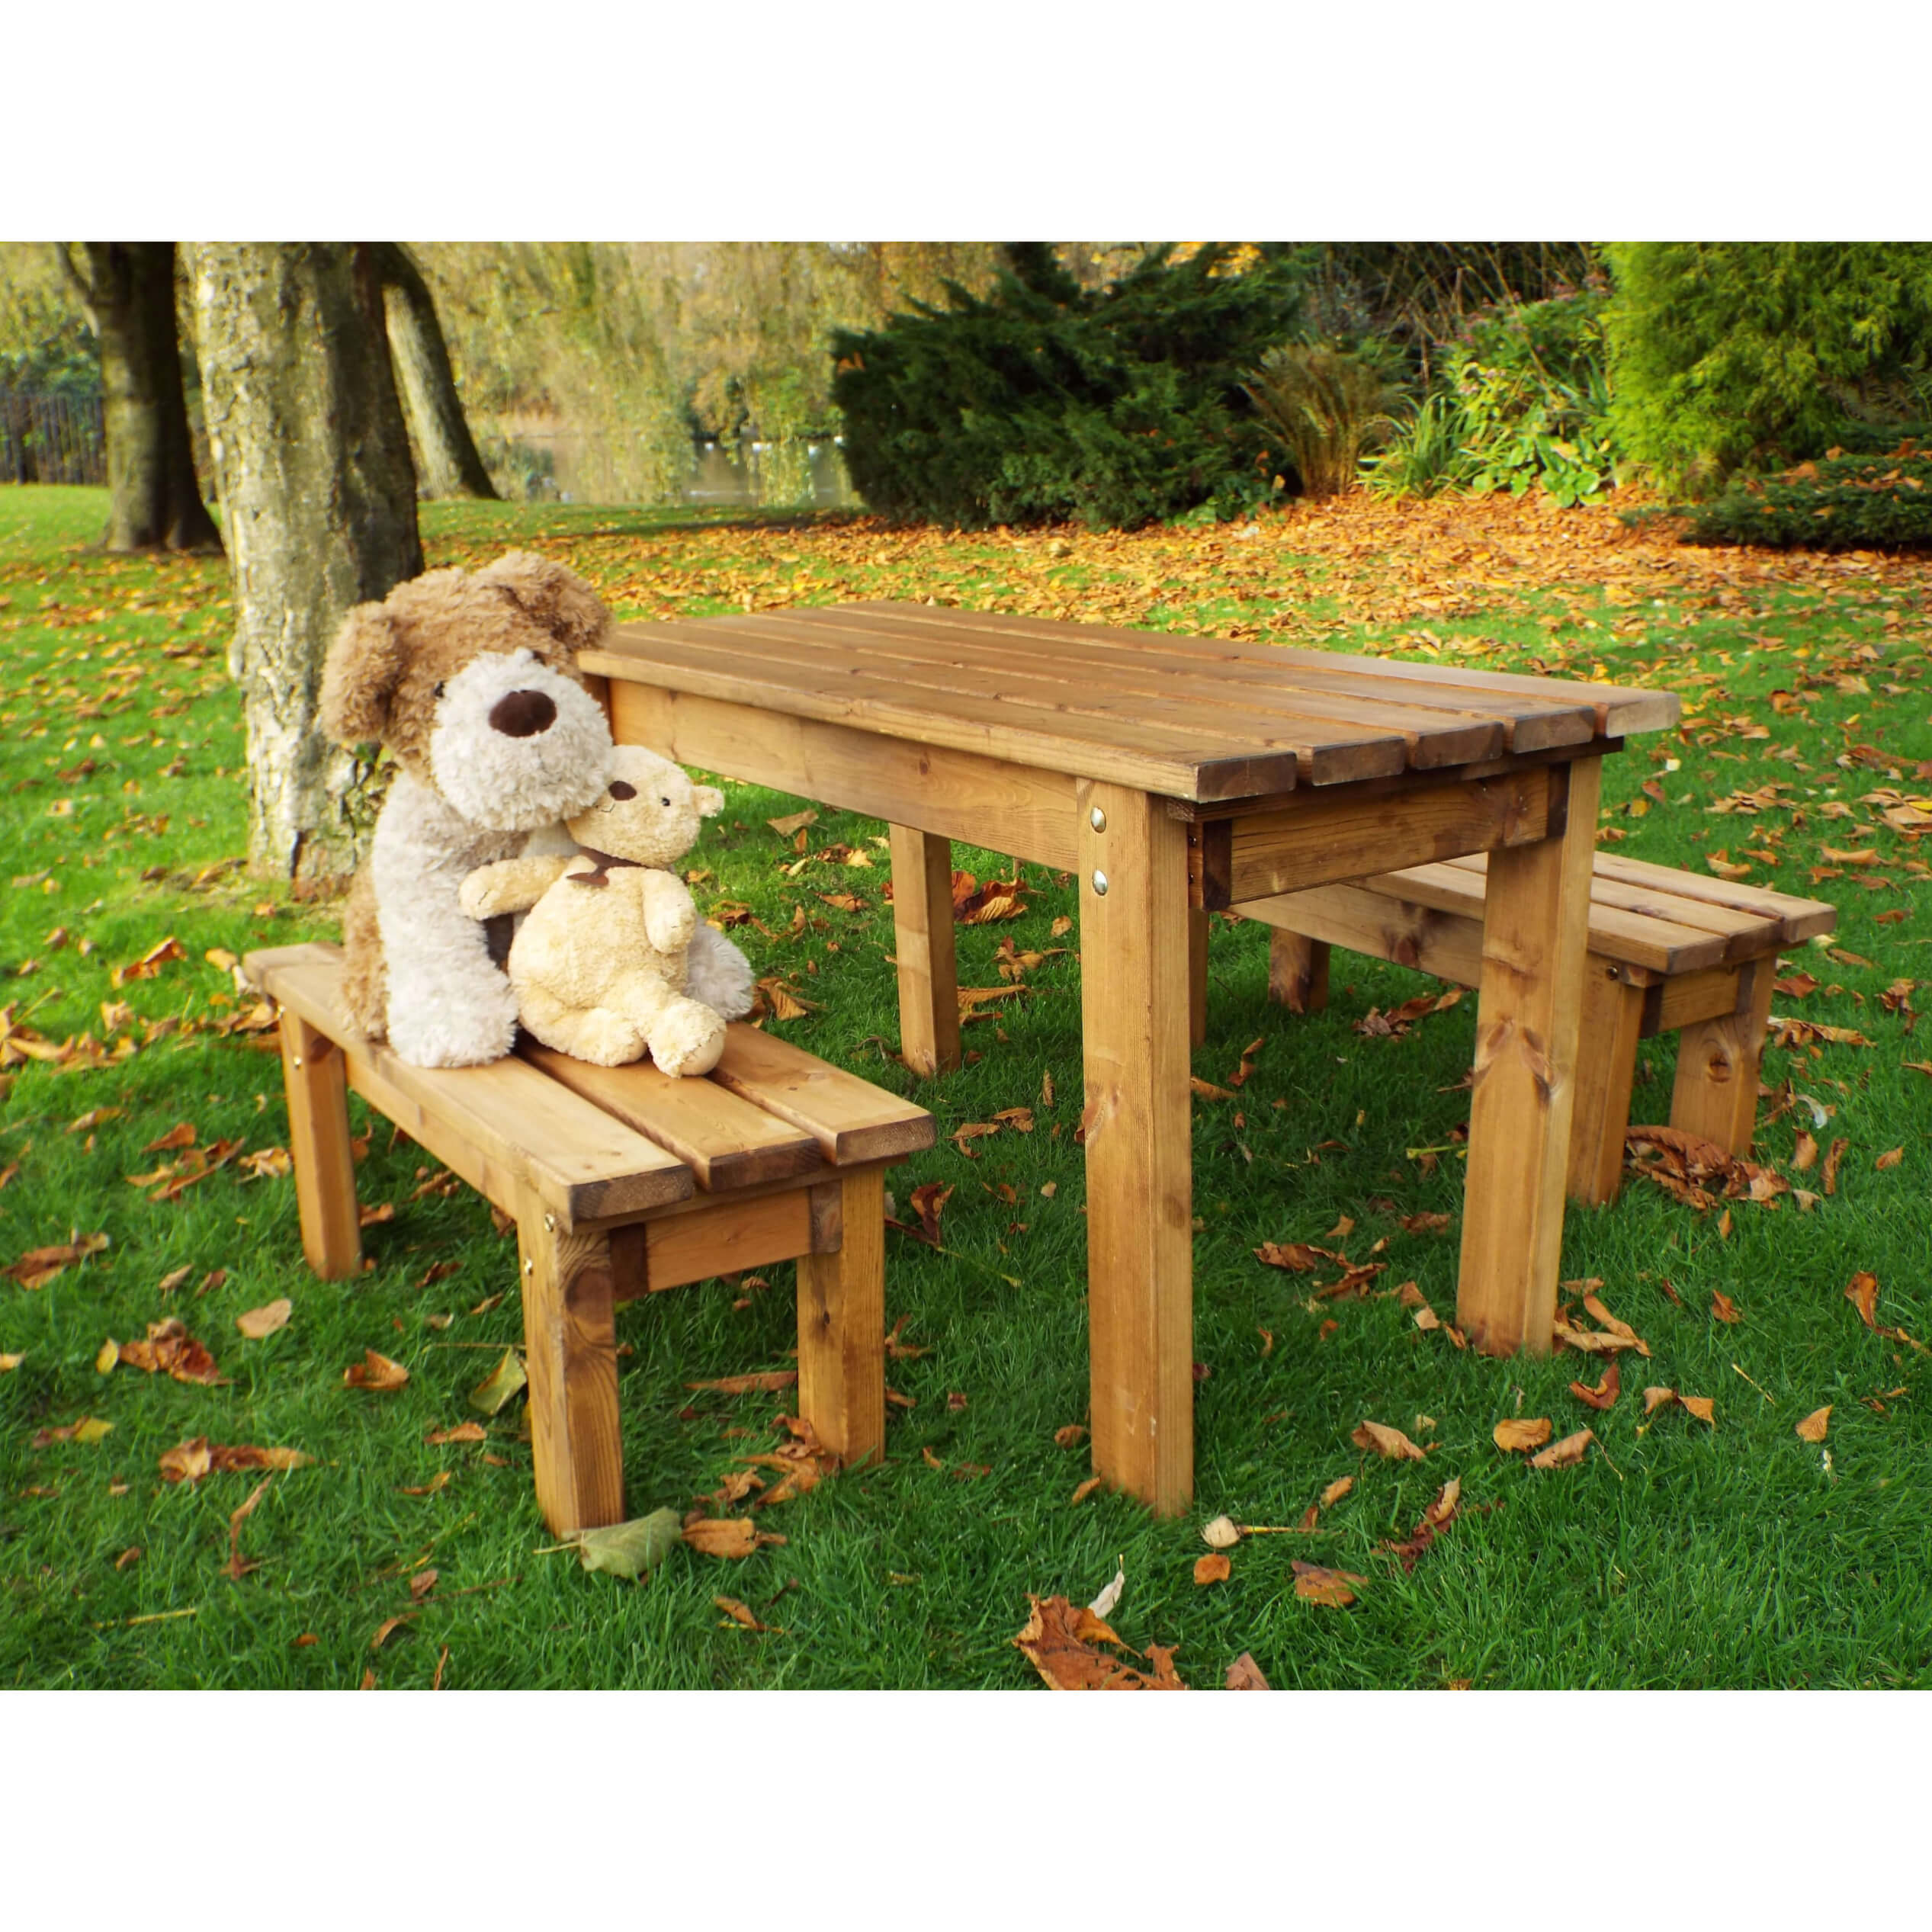 Childrens Garden Bench Table Set - Solid Patio Kids Furniture